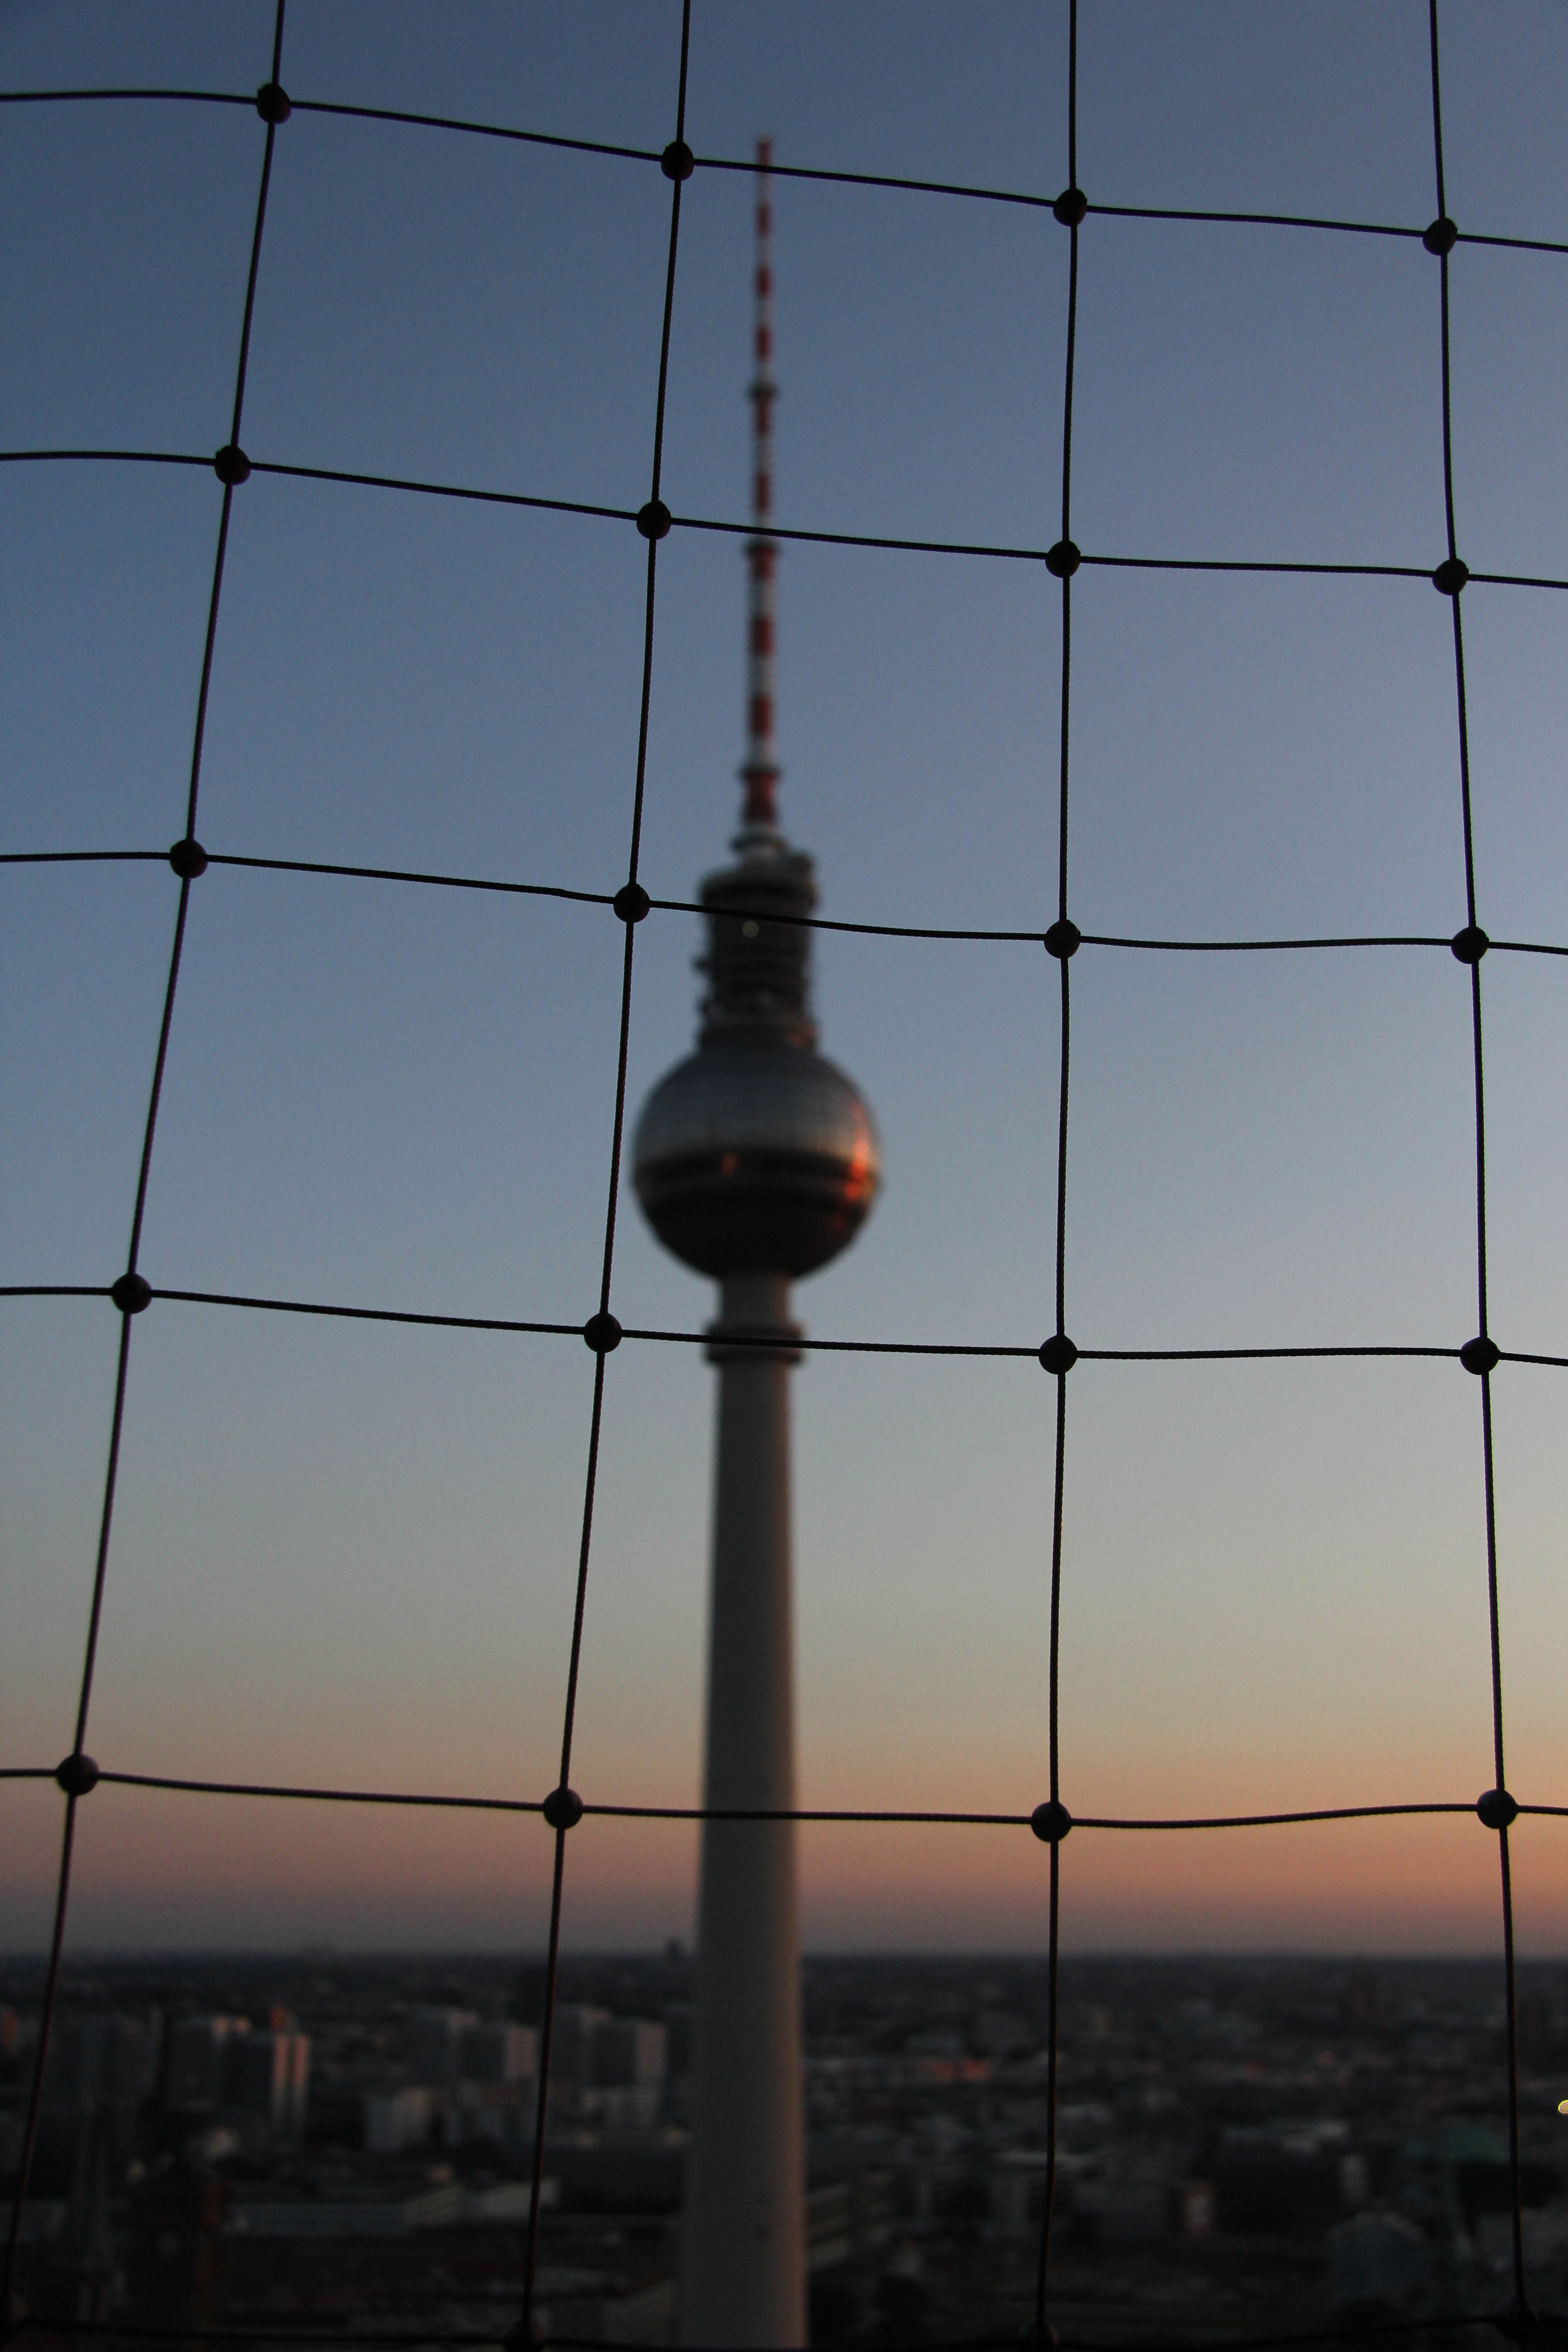 Fernsehturm through netting: The view from the Sun Terrace of the Park Inn on Alexanderplatz